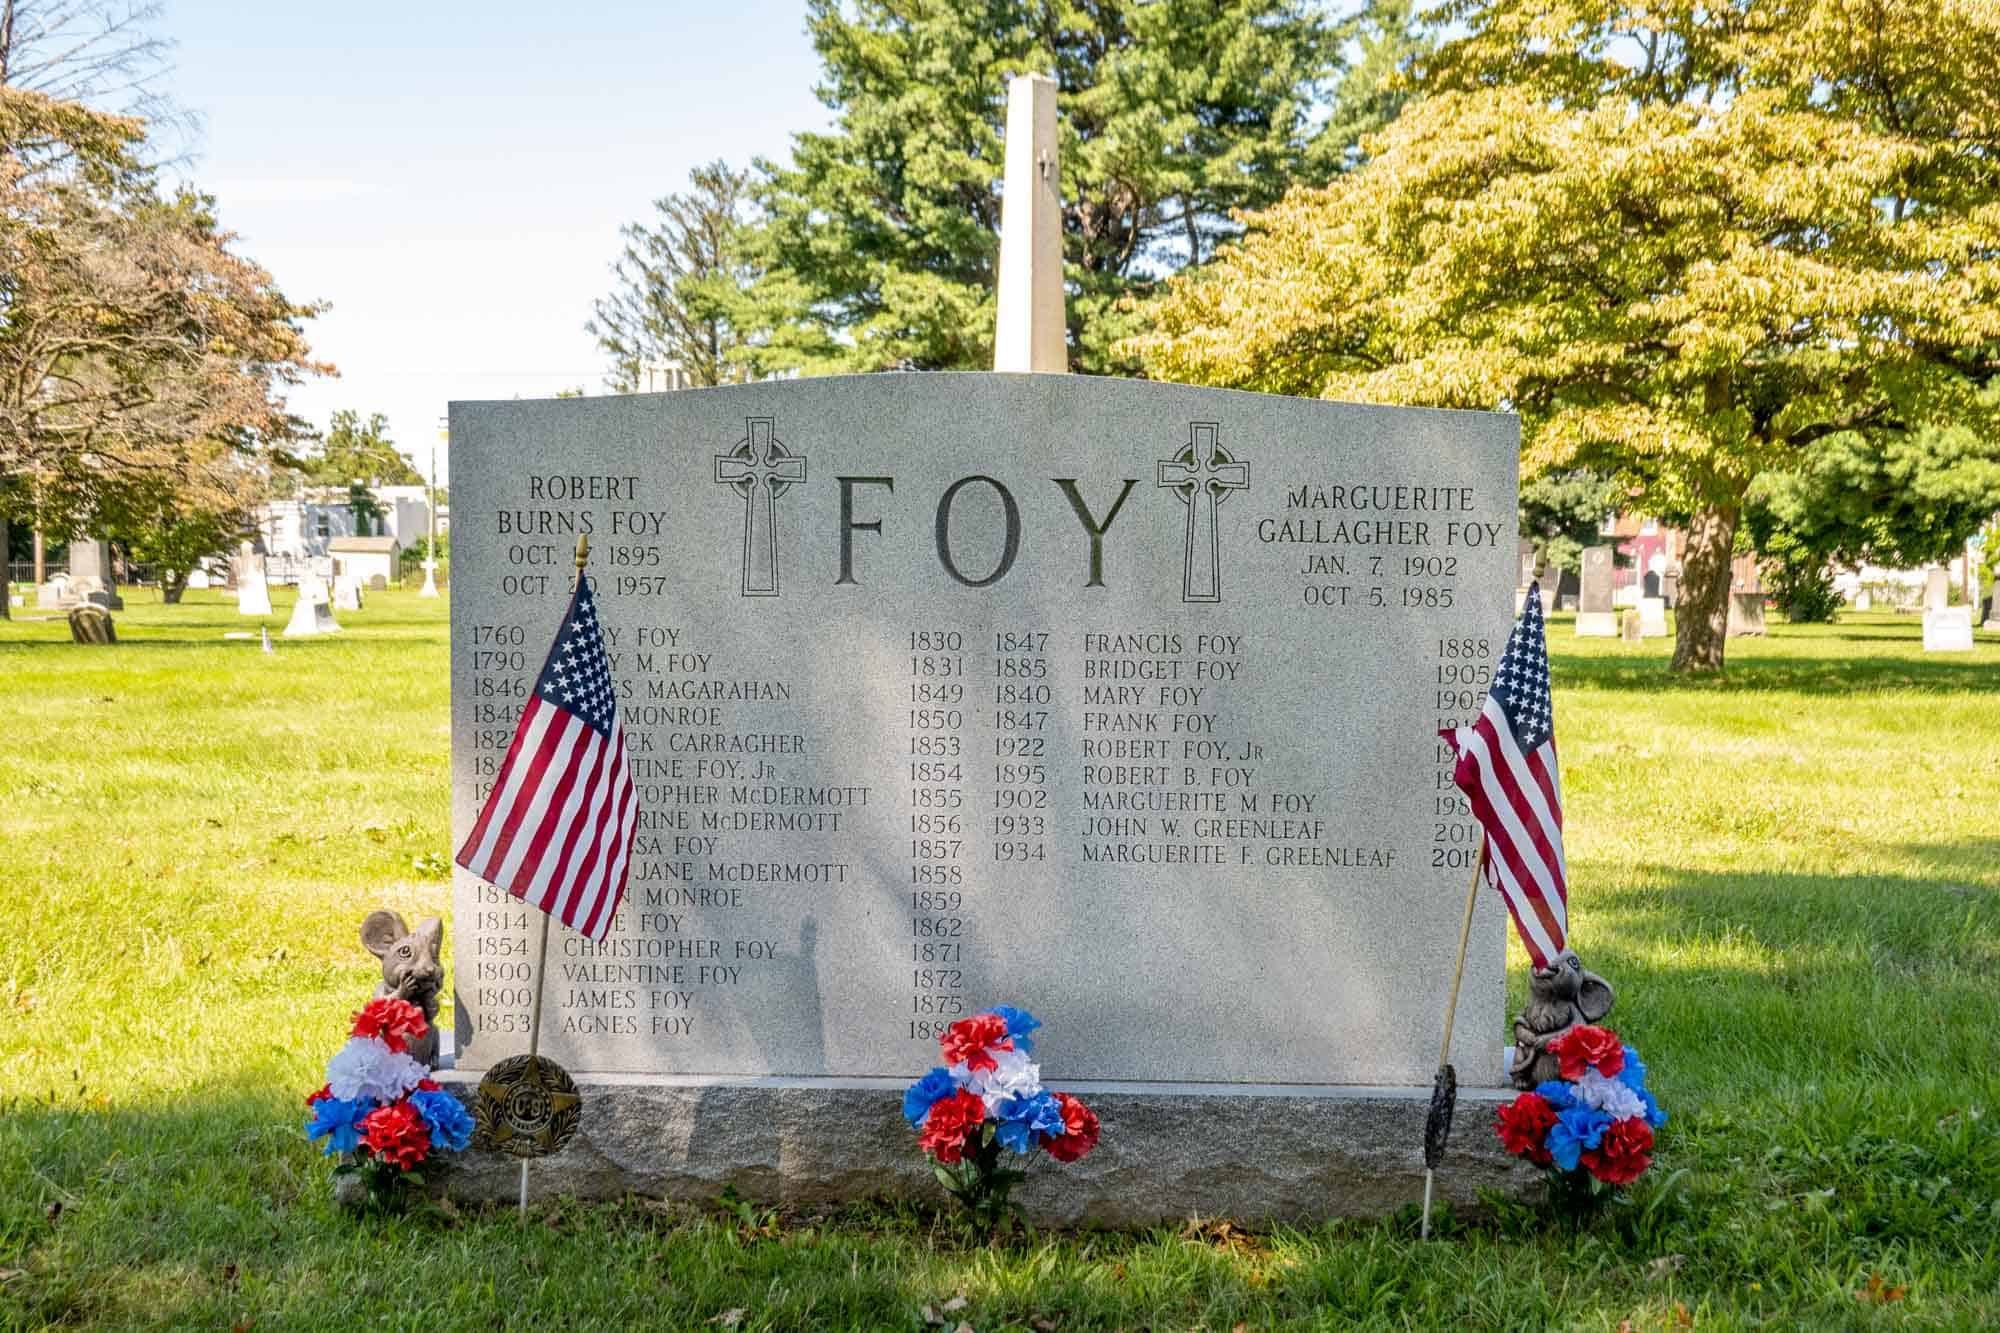 Large tombstone with many family names on it, with American flags and flowers